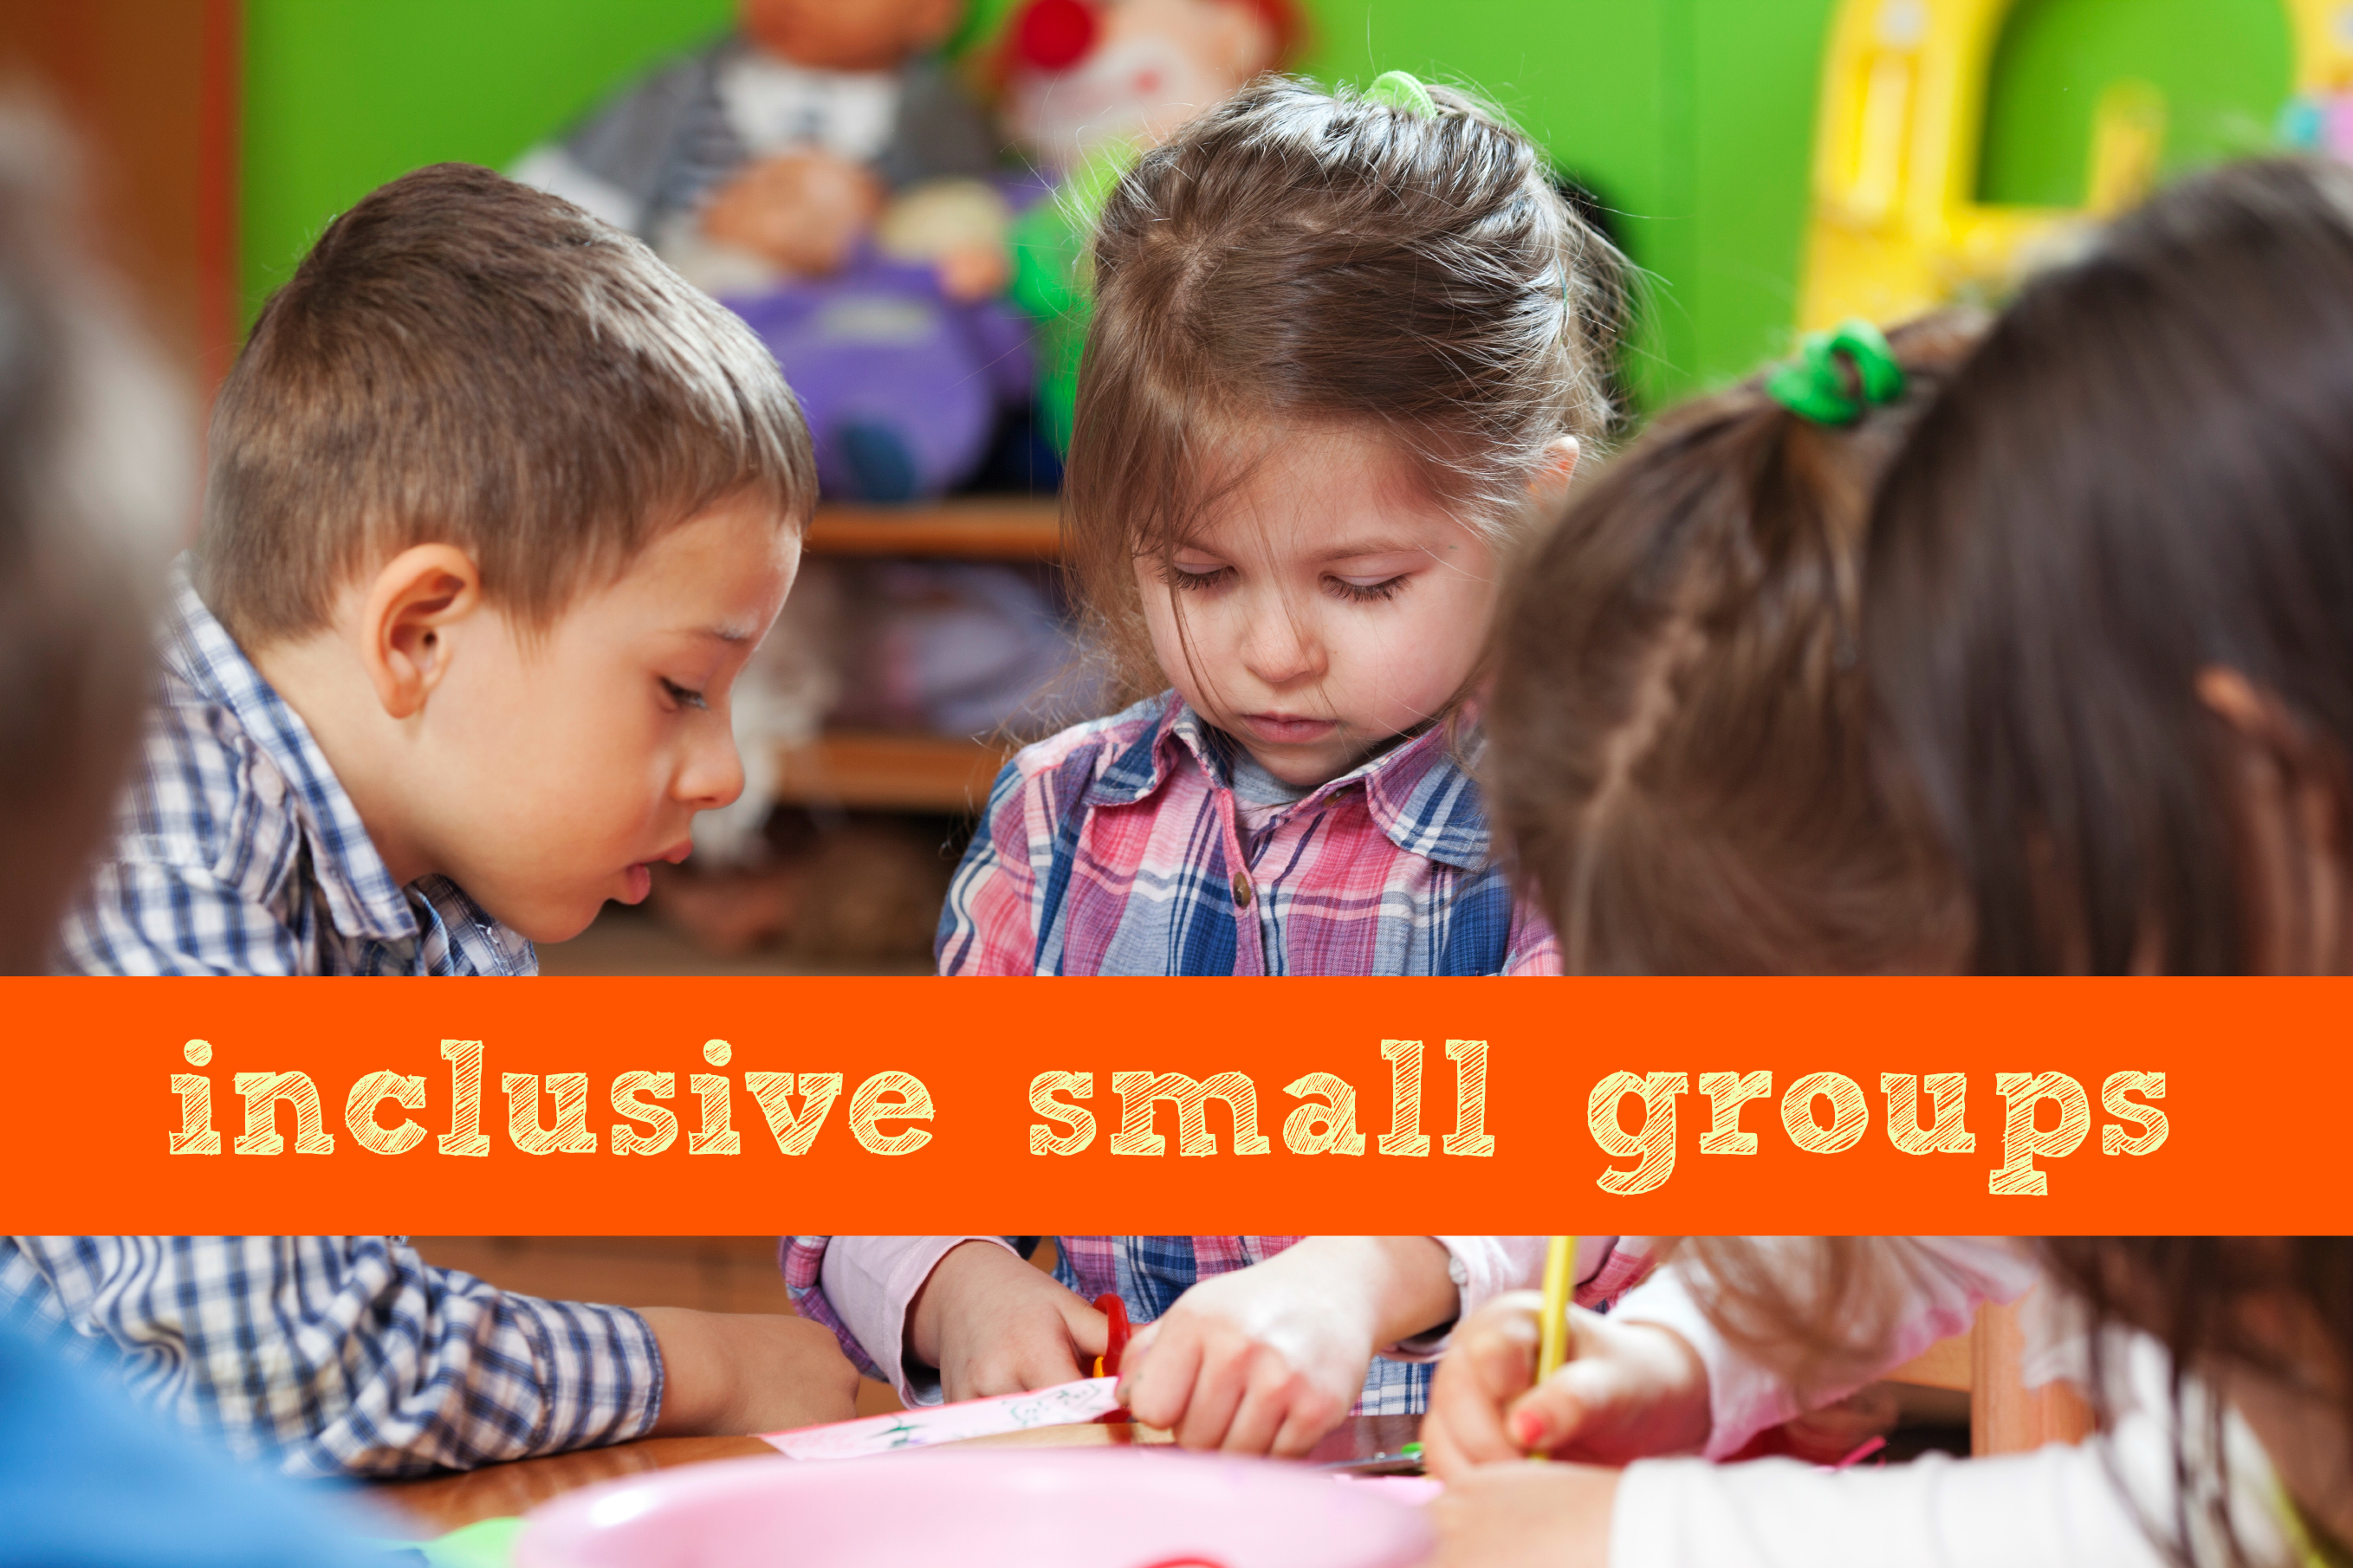 8 Ways To Make Your Small Group Activities More Inclusive